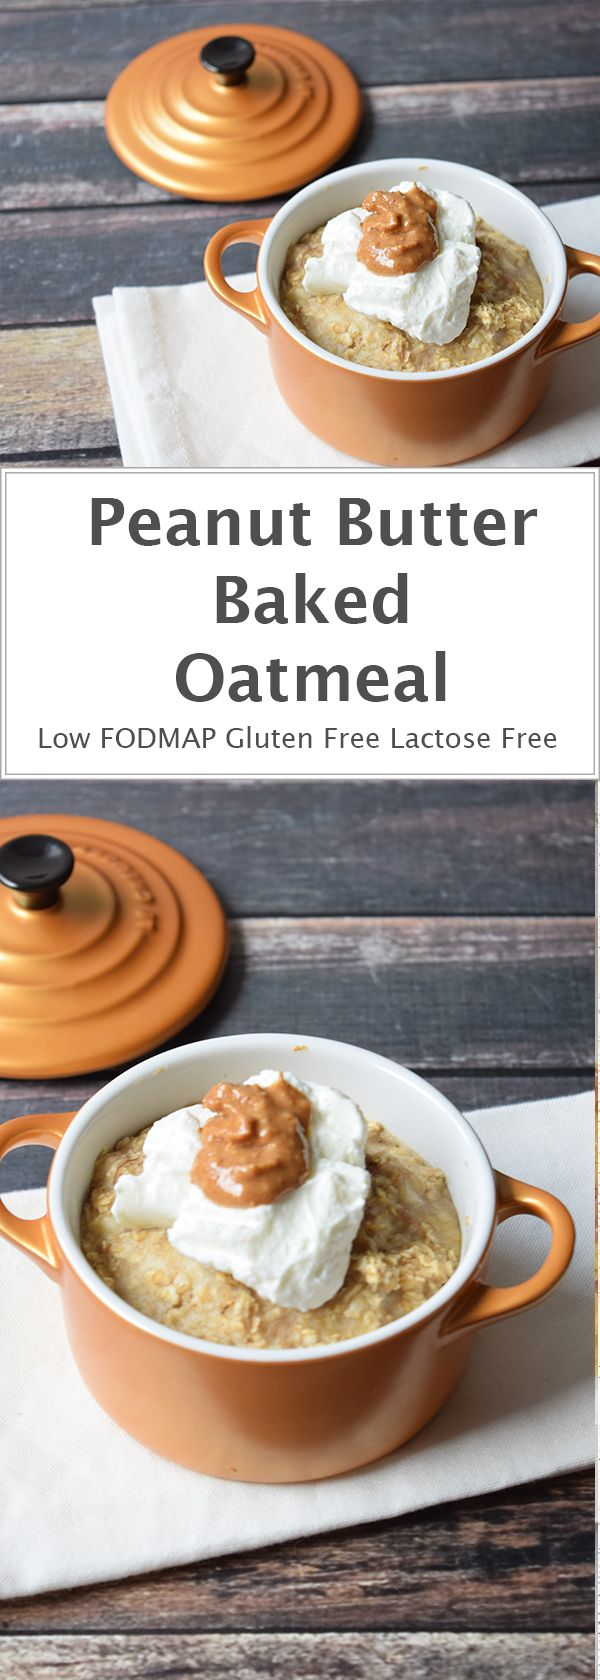 Baked oatmeal with liquid peanut butter on the inside. Breakfast doesn't get…